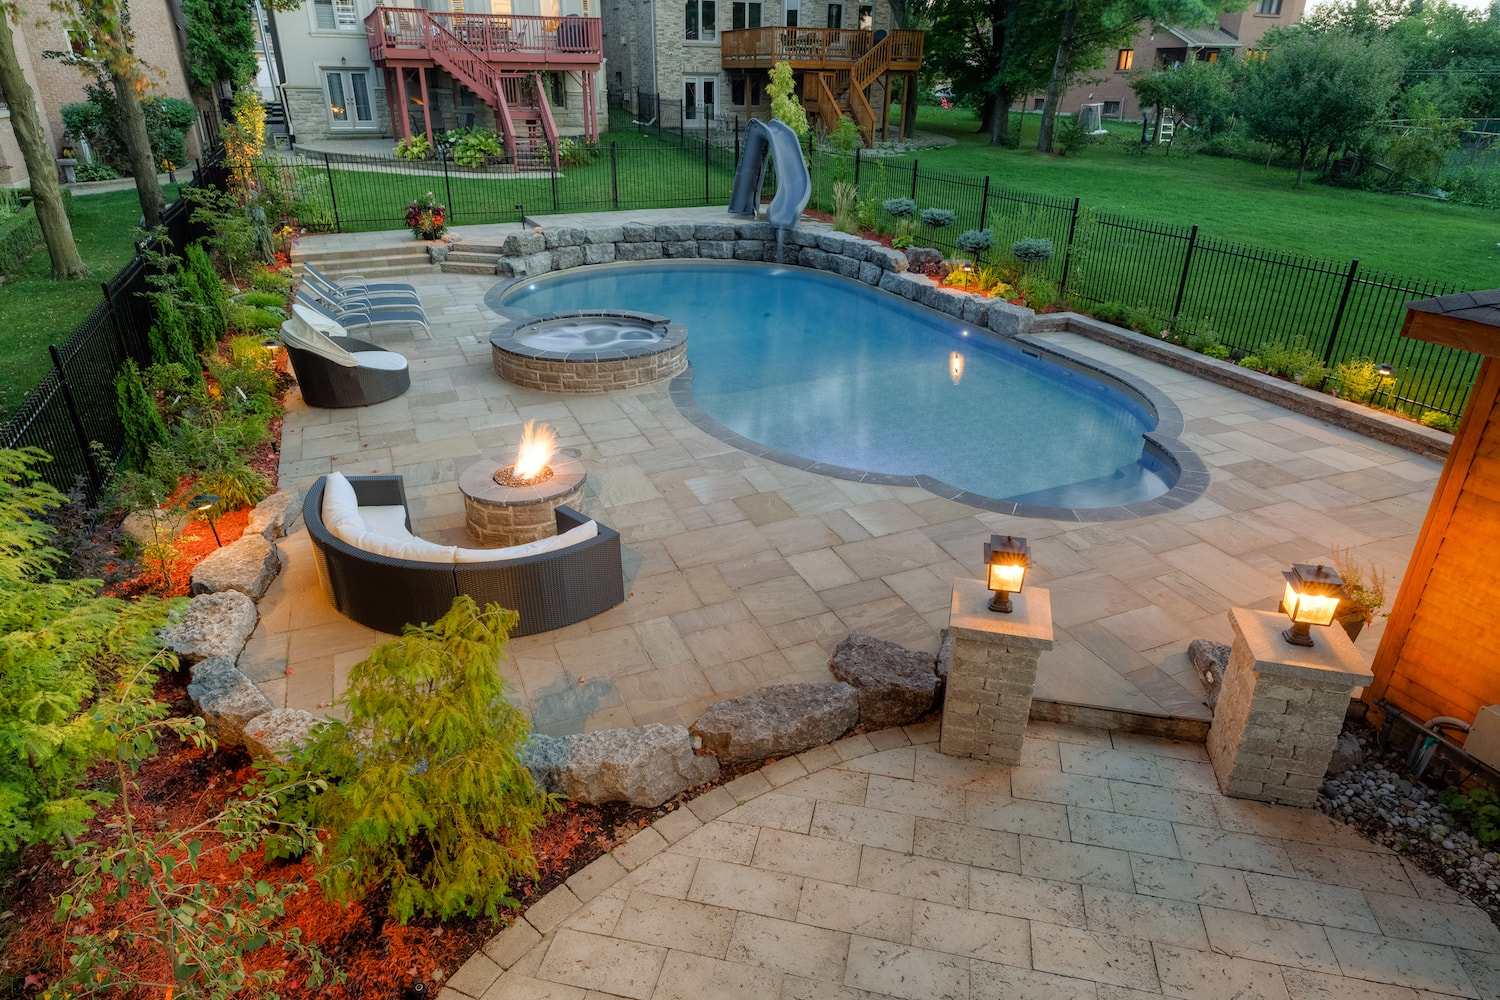 Vinyl Pools Vs Fiberglass Pools Vs Concrete Pools